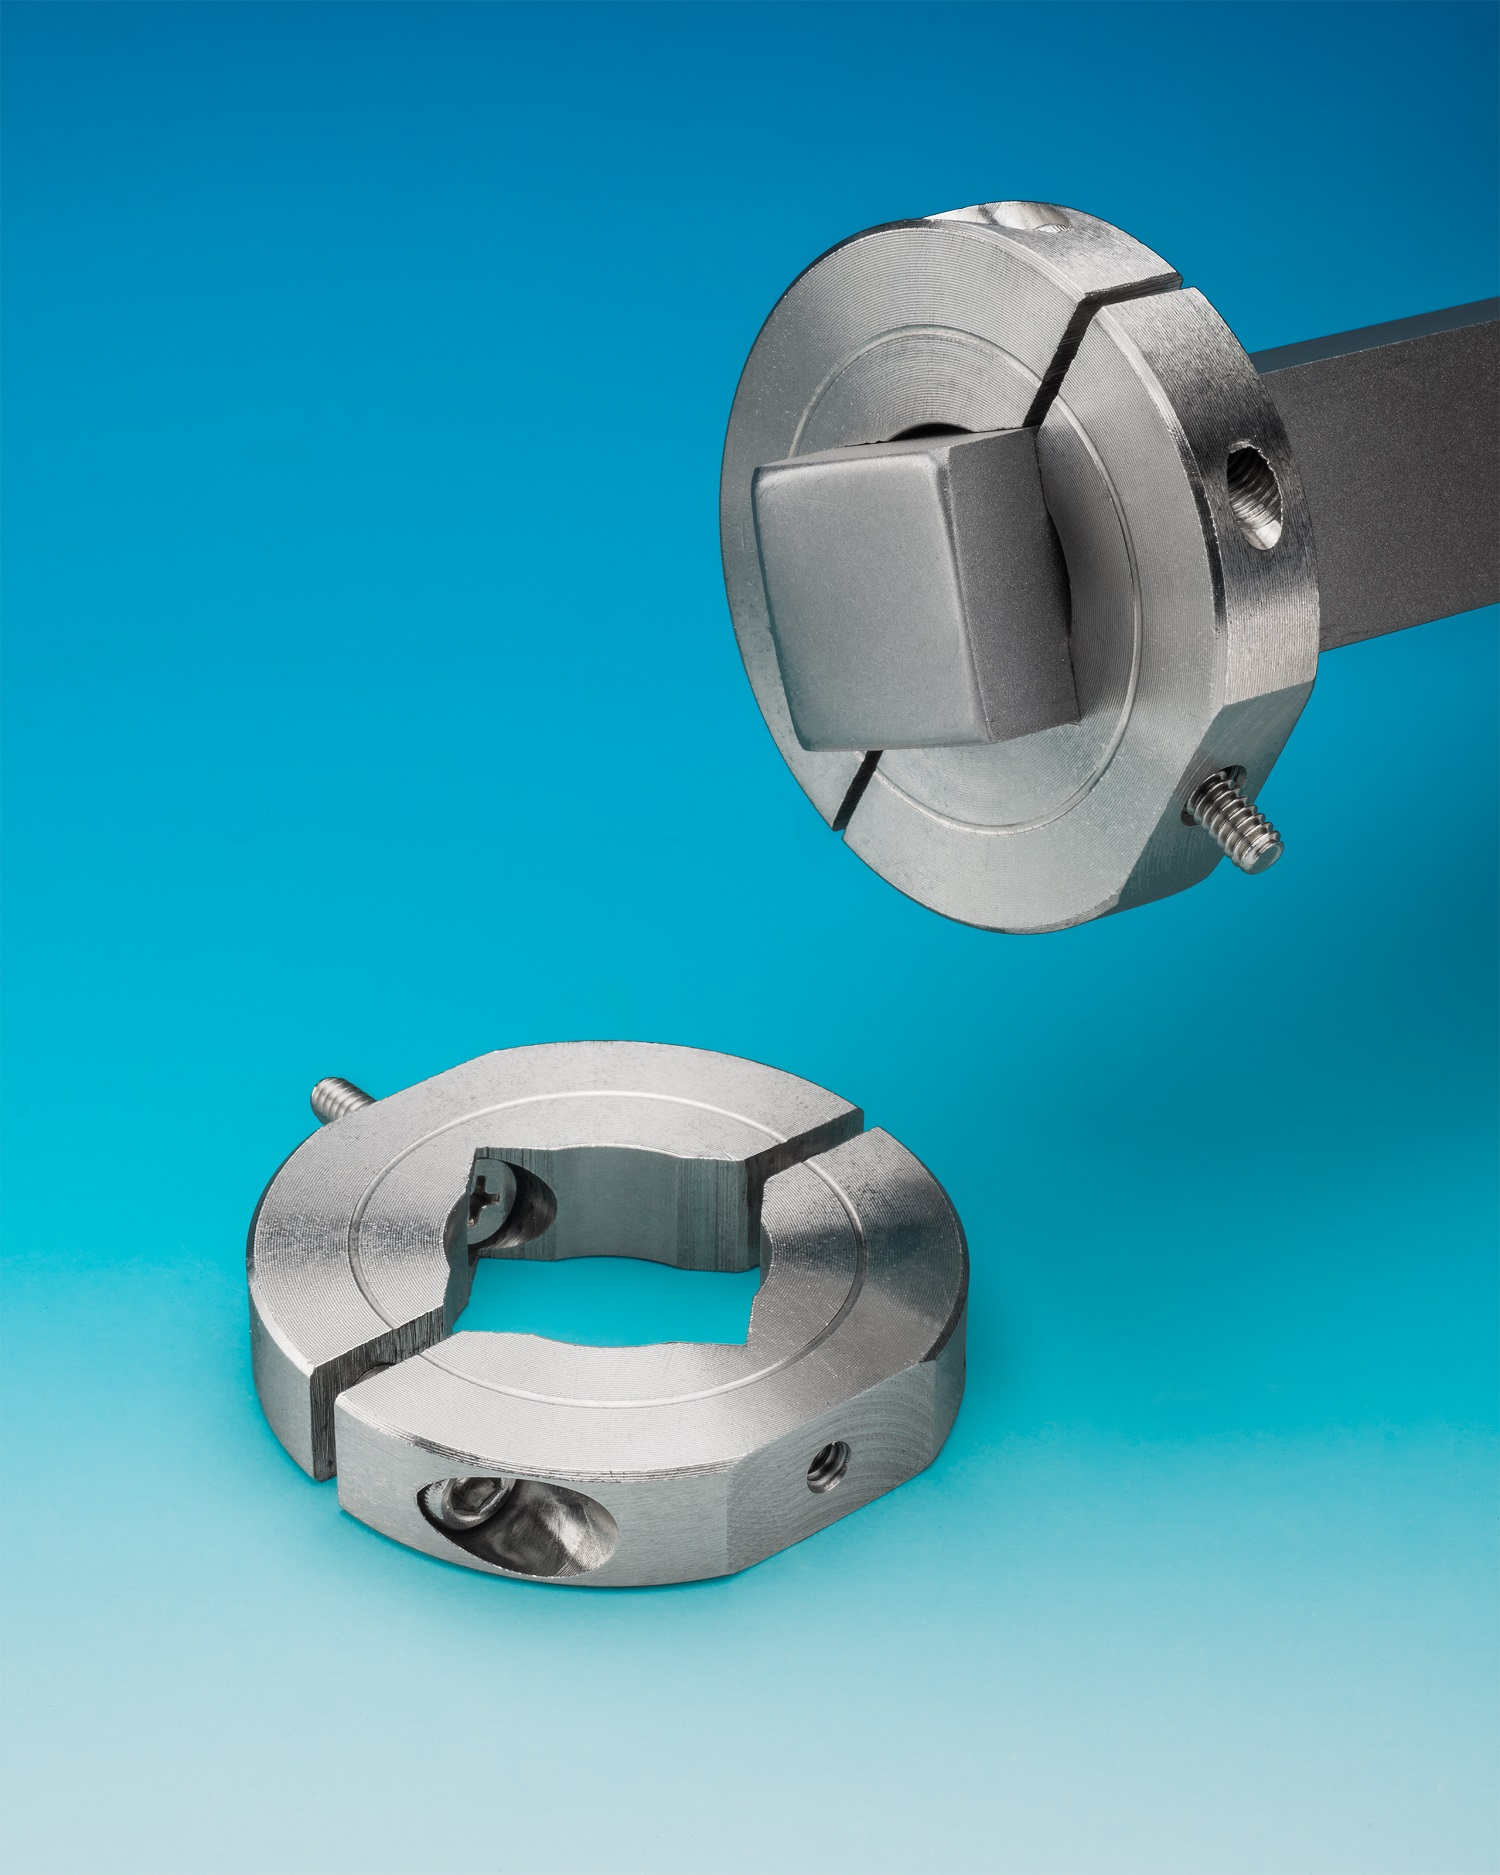 SQUARE BORE MOUNTING COLLAR DESIGNED FOR SQUARE SHAFTS AND TUBING